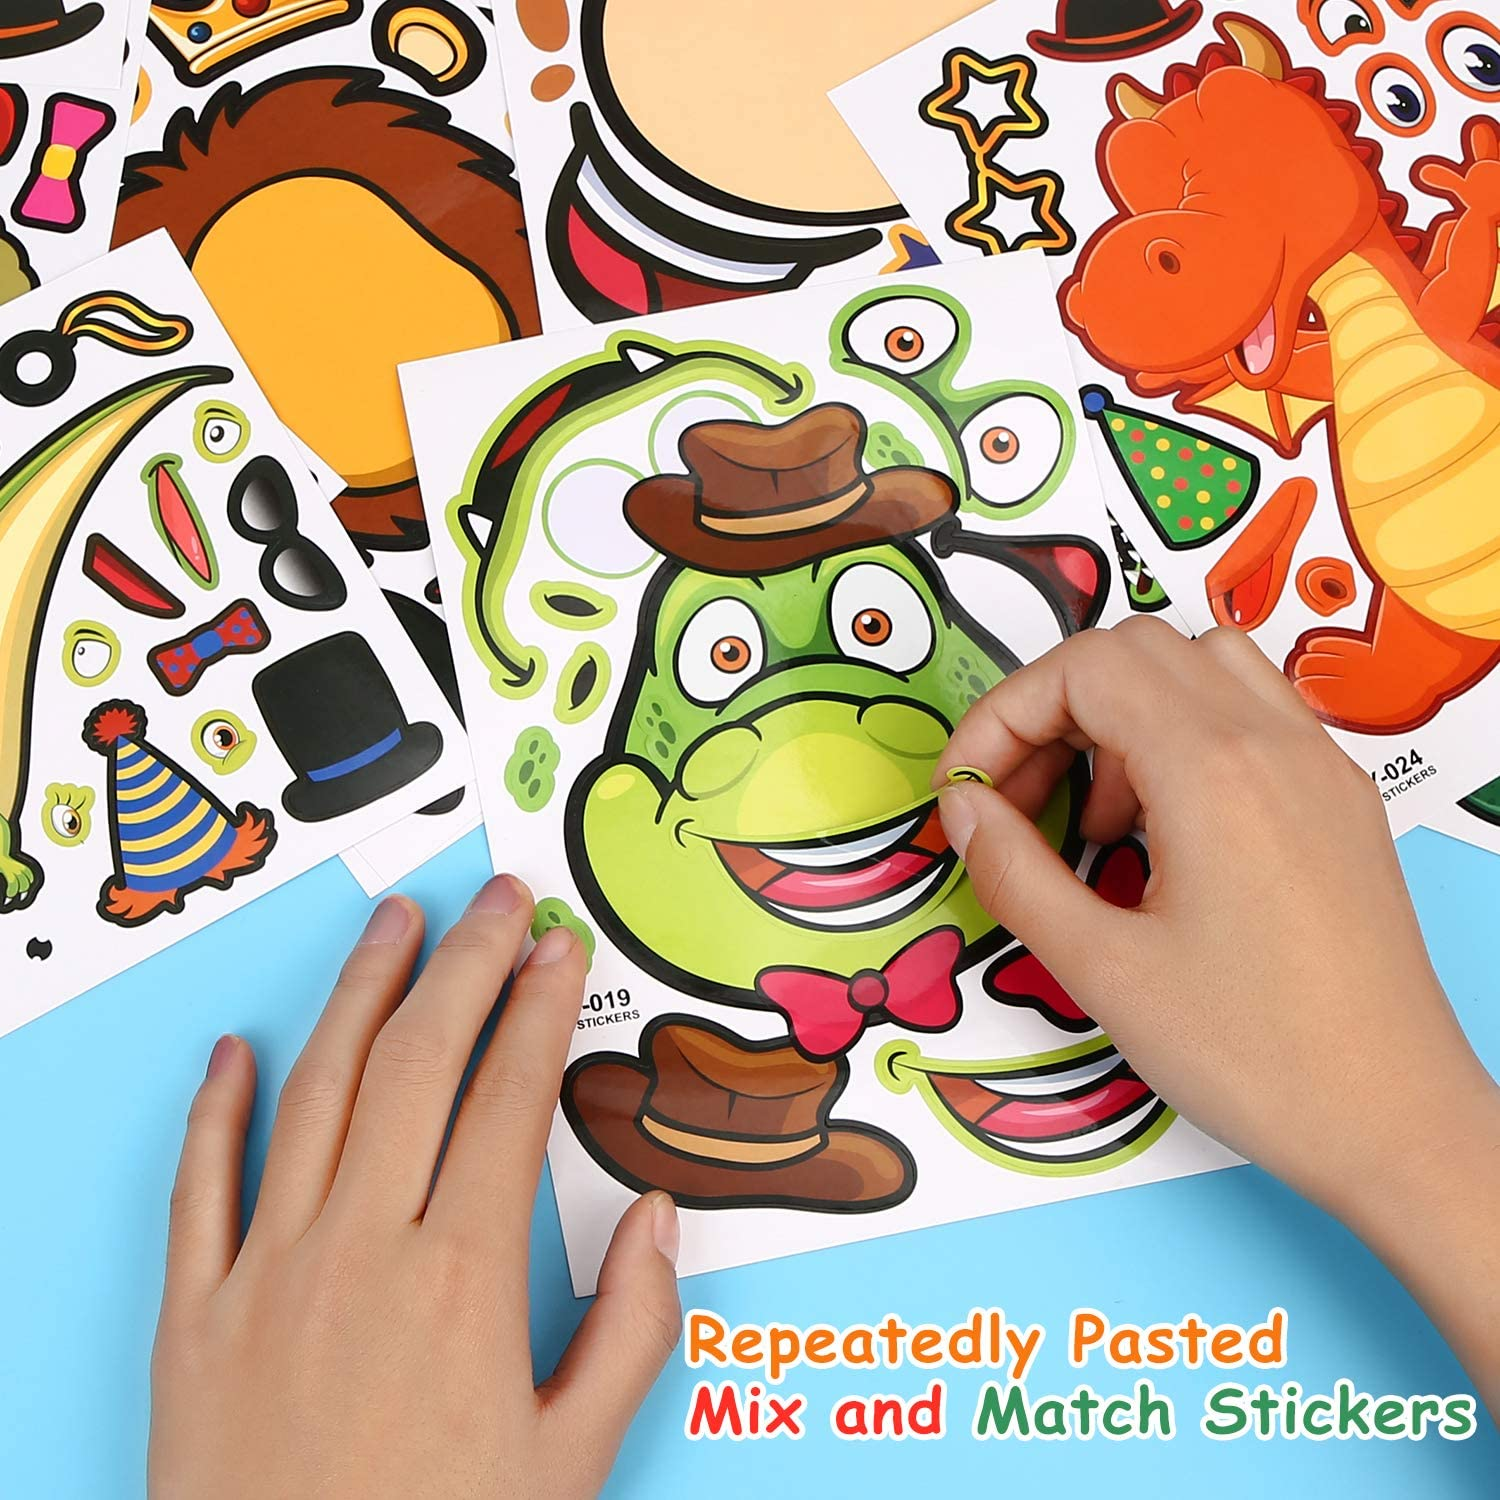 SCIONE Kids Stickers 48 Pack,Animal Make-a-face Sheets,Dinosaur Birthday Party Favors for Kids,Mix and Match Stickers Variety Pack with Safaris and Fantasy,Zoo Kids Party Supplies Goody Bags Fillers